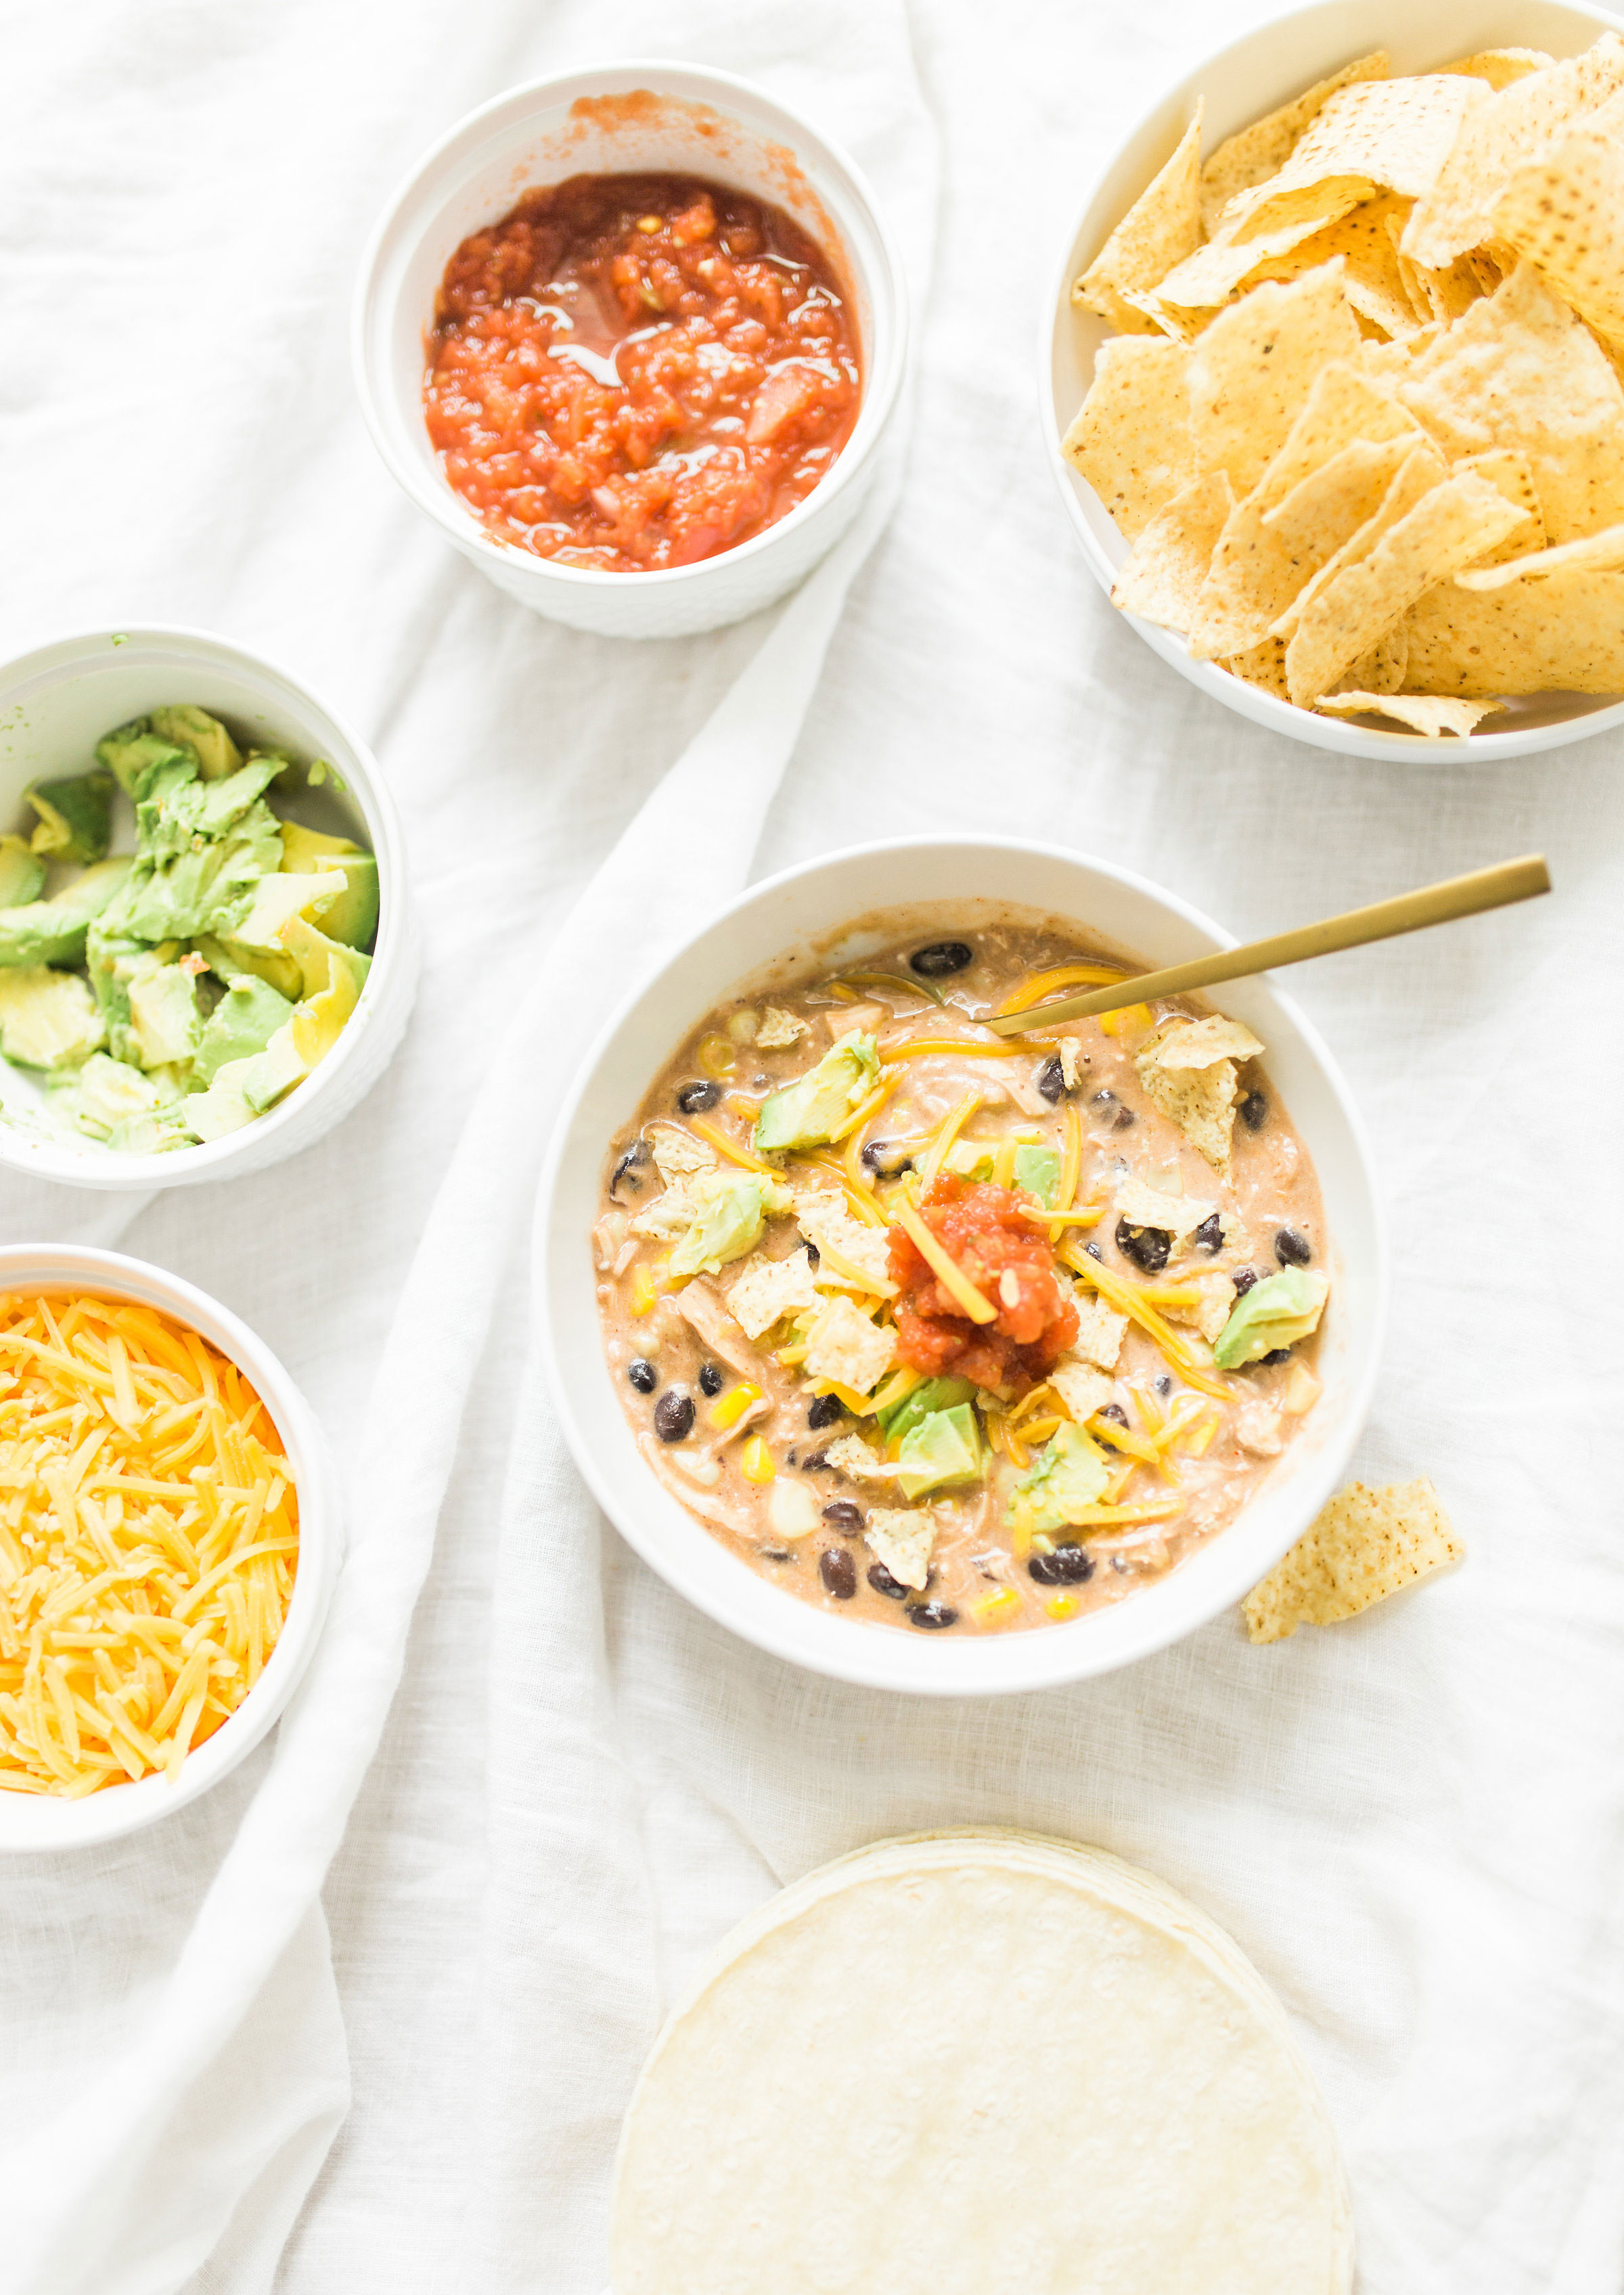 This easy and delicious creamy chicken enchilada soup is made in a crockpot or Instant Pot - a.k.a., dump it and forget it. Our whole family loves it. #crockpot #crockpotmeals #crockpotdinner #instantpot #instantpotdinner #instantpotchicken #crockpotchicken #chickenenchiladas #crockpotenchiladas #instantpotenchiladas #slowcooker #slowcookersoup #slowcookerenchiladas #slowcookermeals Click through for the recipe. | glitterinc.com | @glitterinc